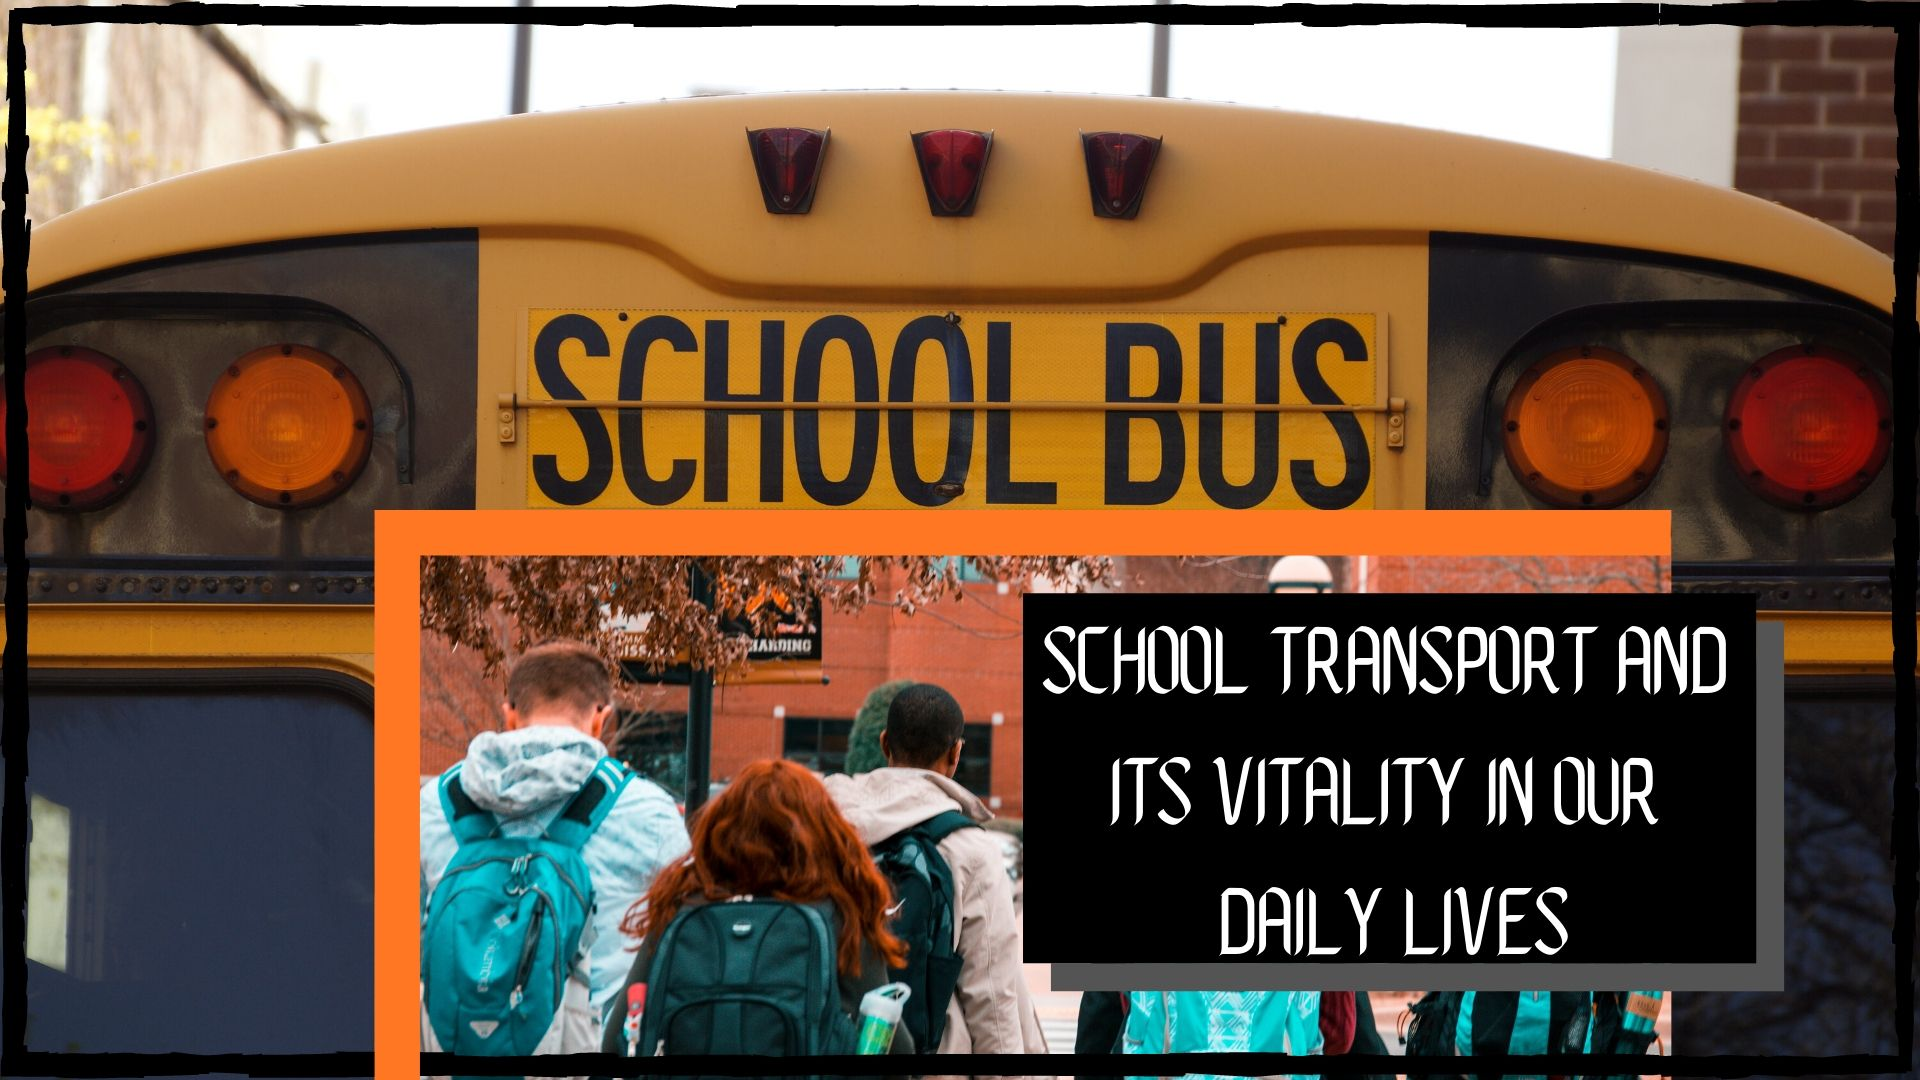 School transport and its vitality in our daily lives